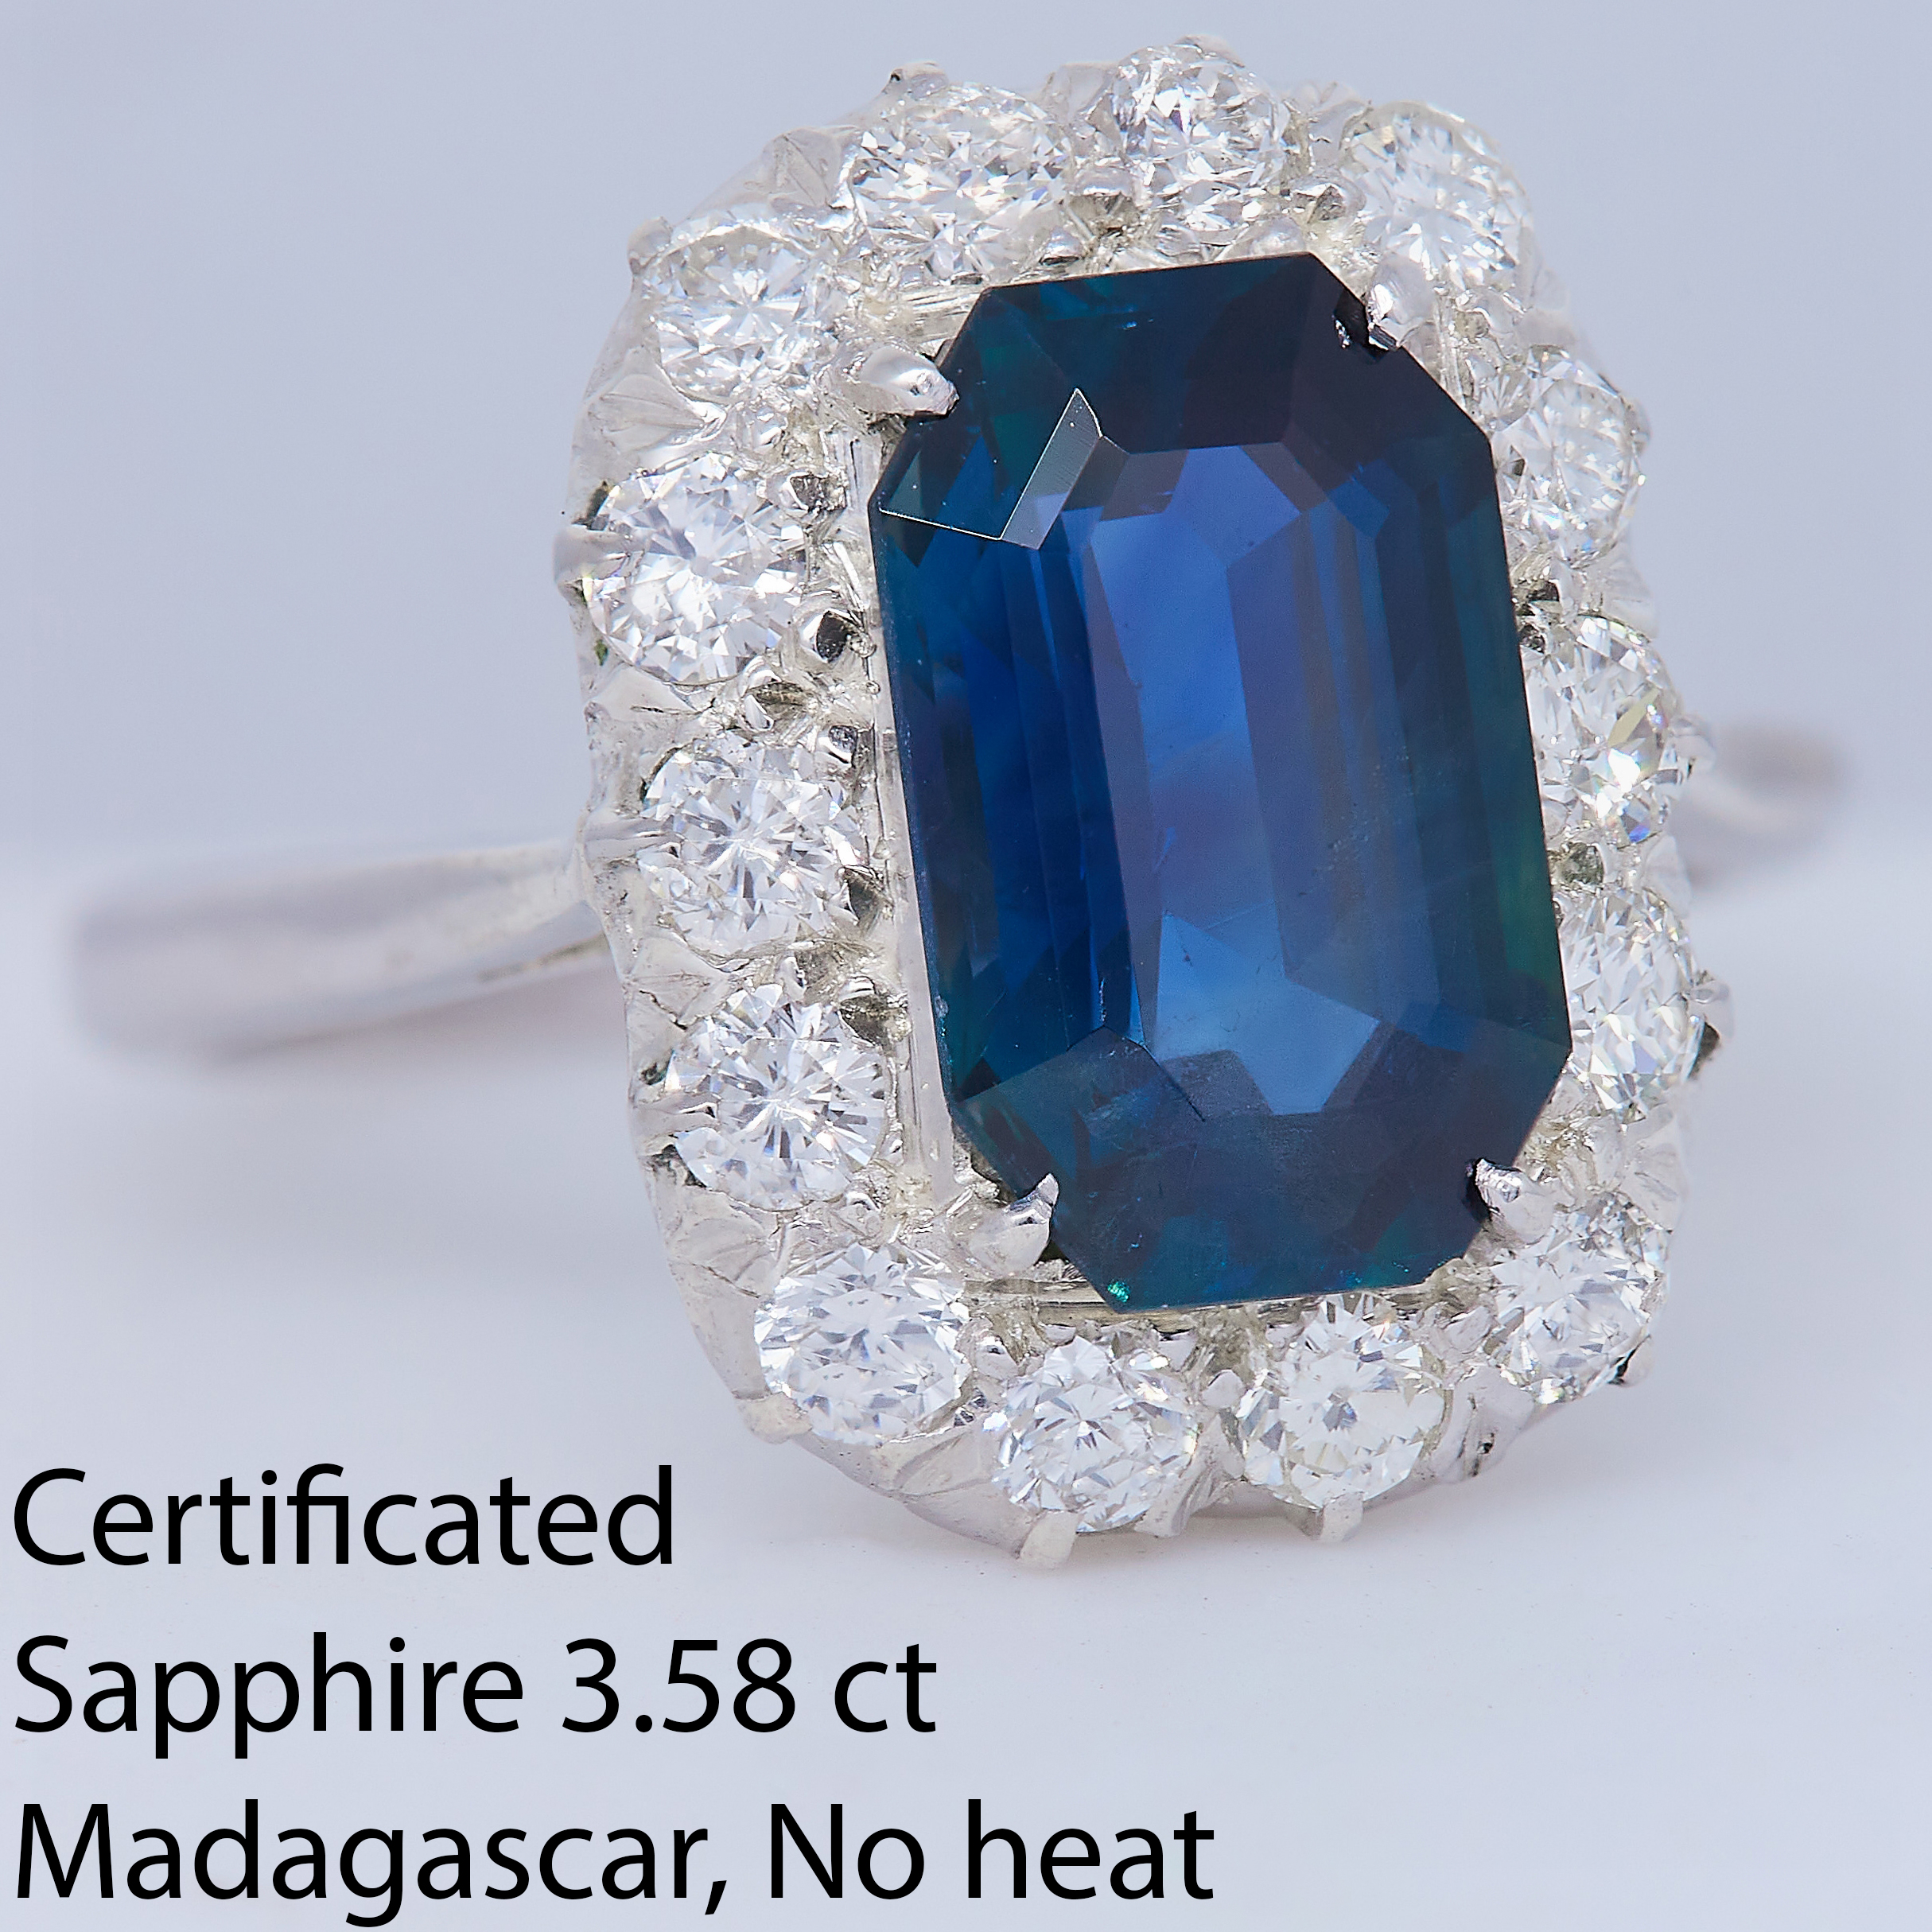 CERTIFICATED 3.58 CT. SAPPHIRE AND DIAMOND DRESS RING